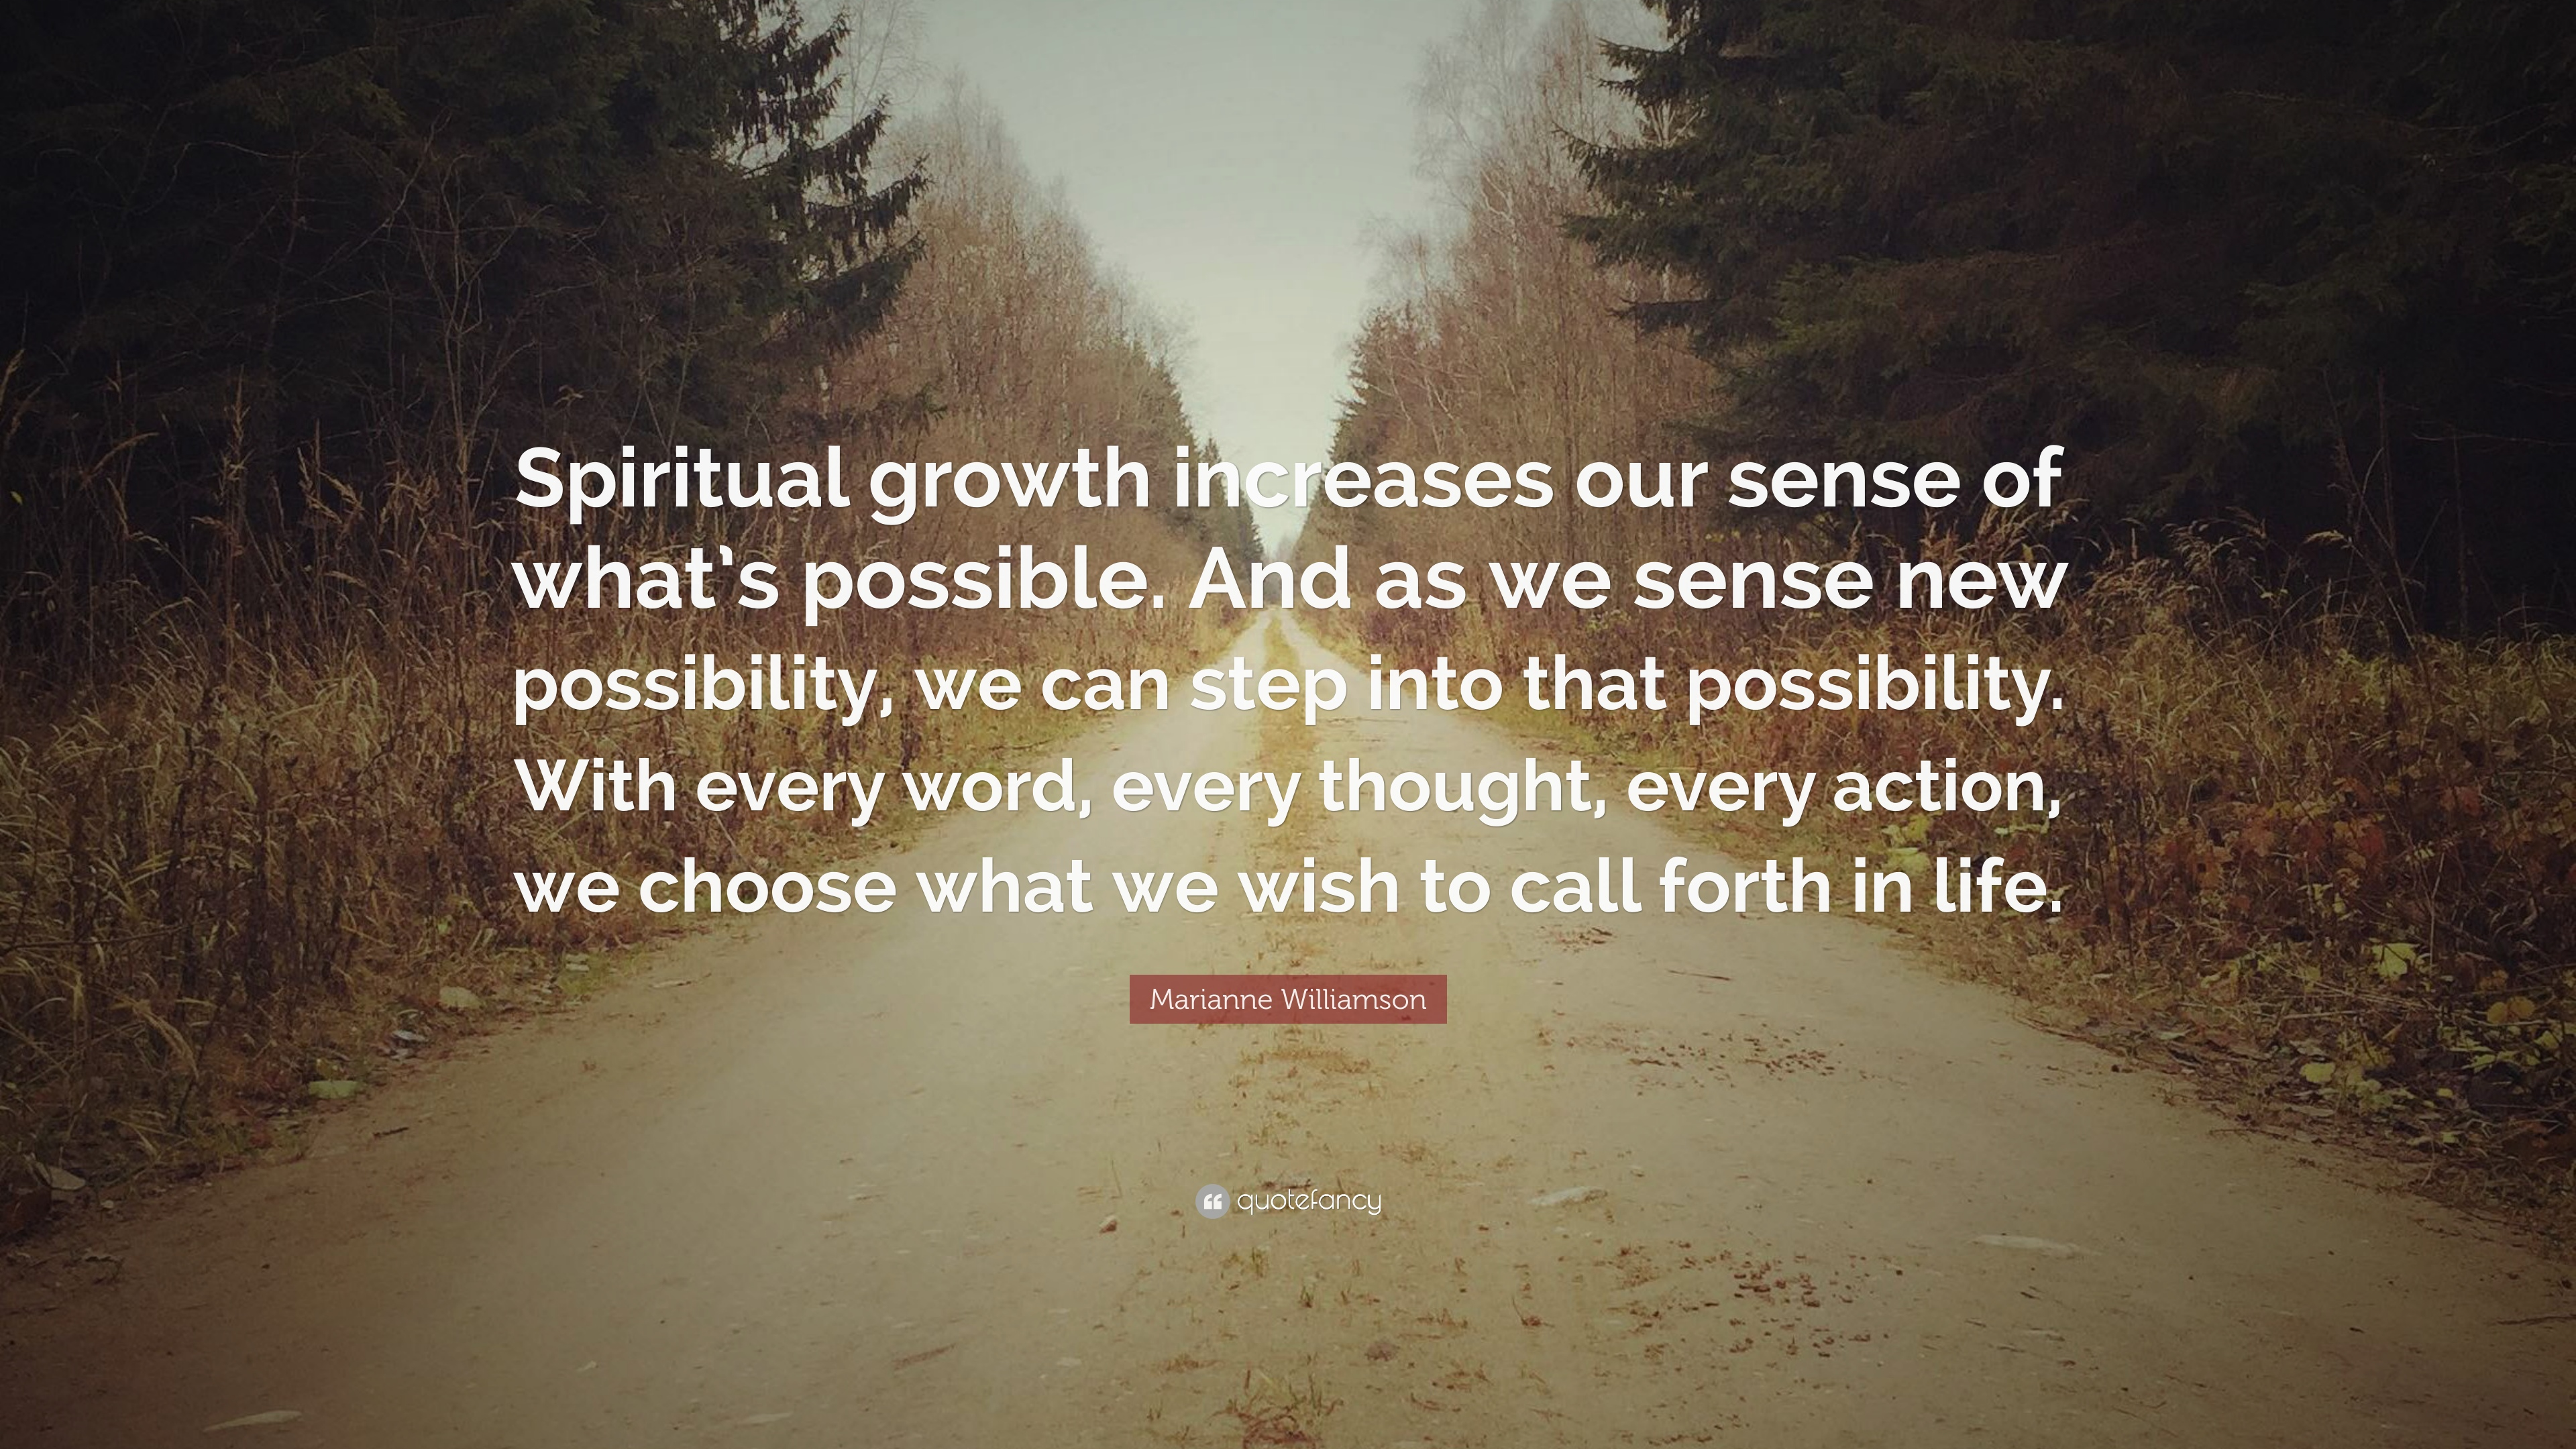 Marianne Williamson Quote Spiritual Growth Increases Our Sense Of